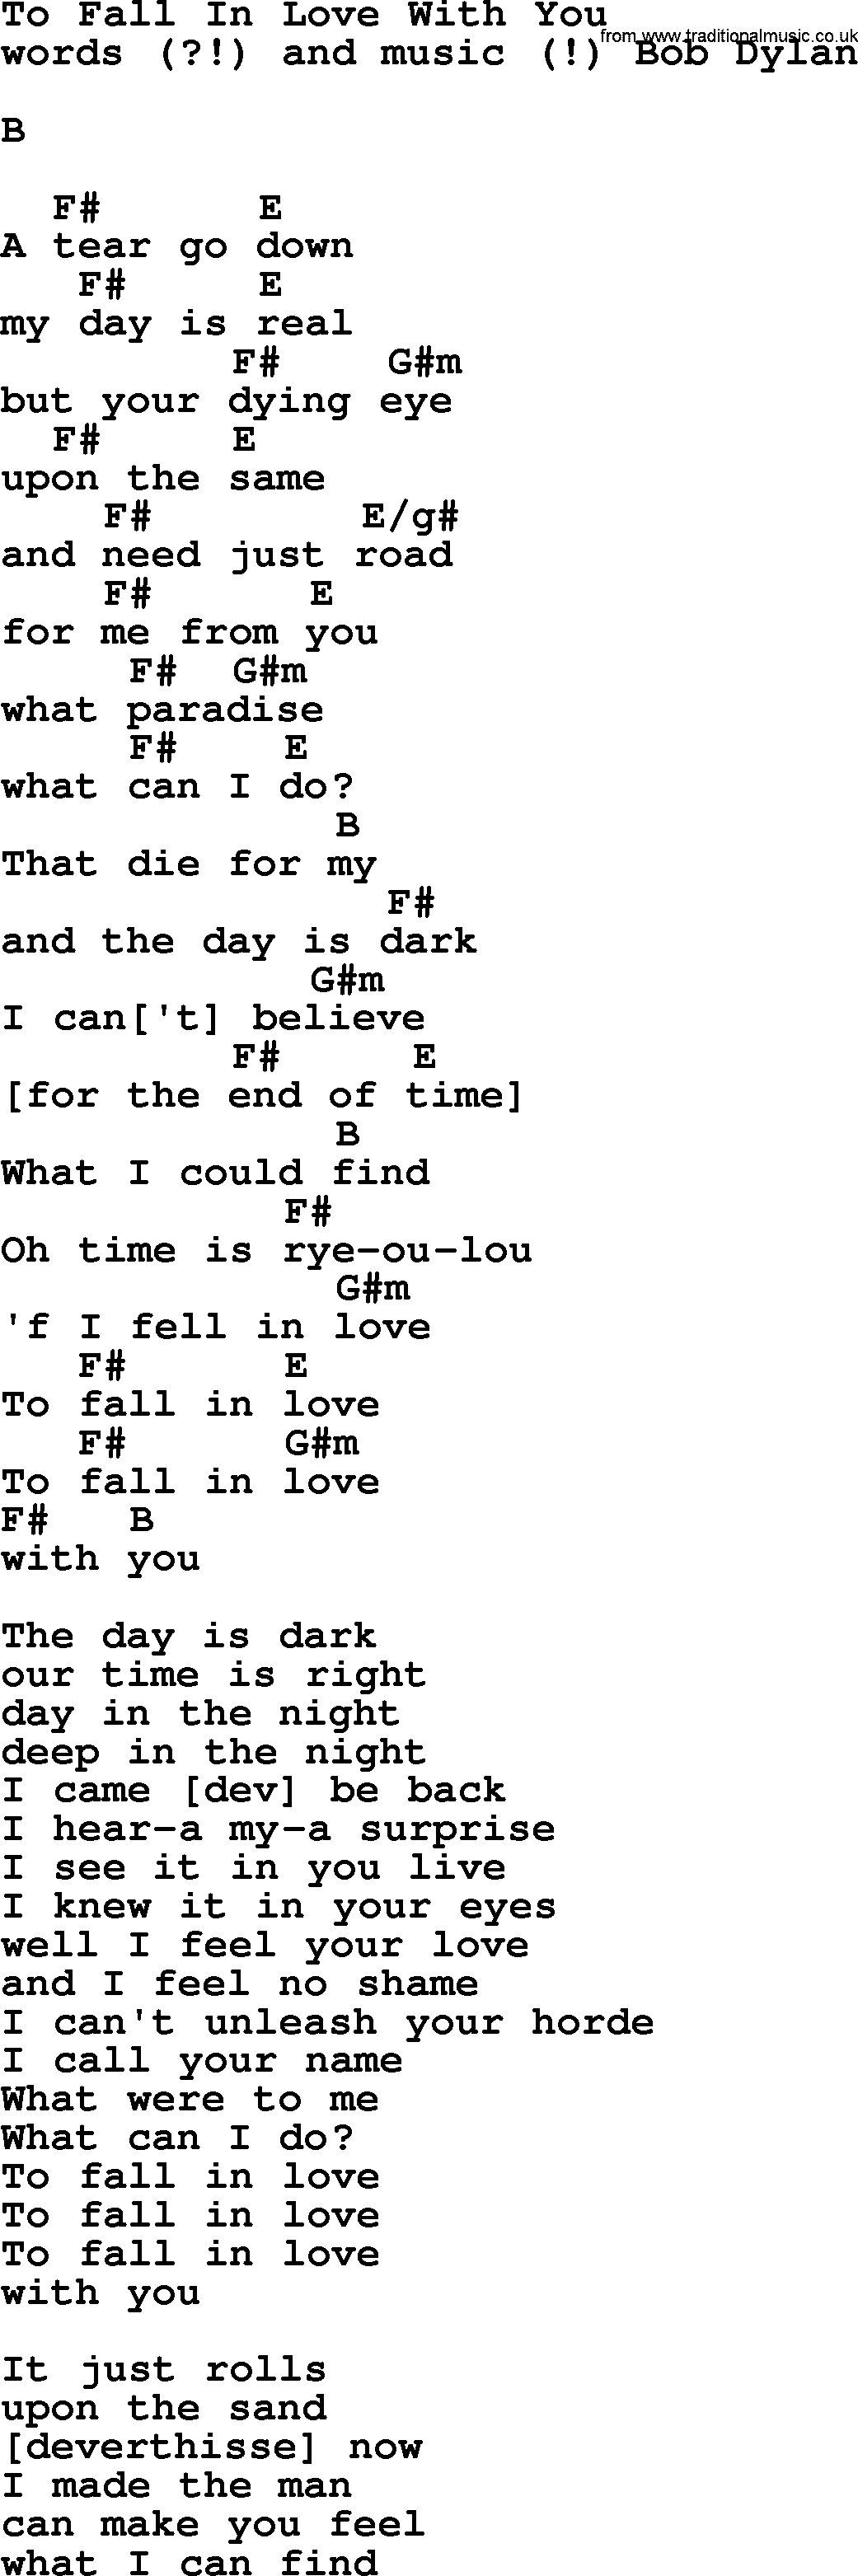 Bob dylan song to fall in love with you lyrics and chords bob dylan song lyrics with chords to fall in love with you hexwebz Image collections